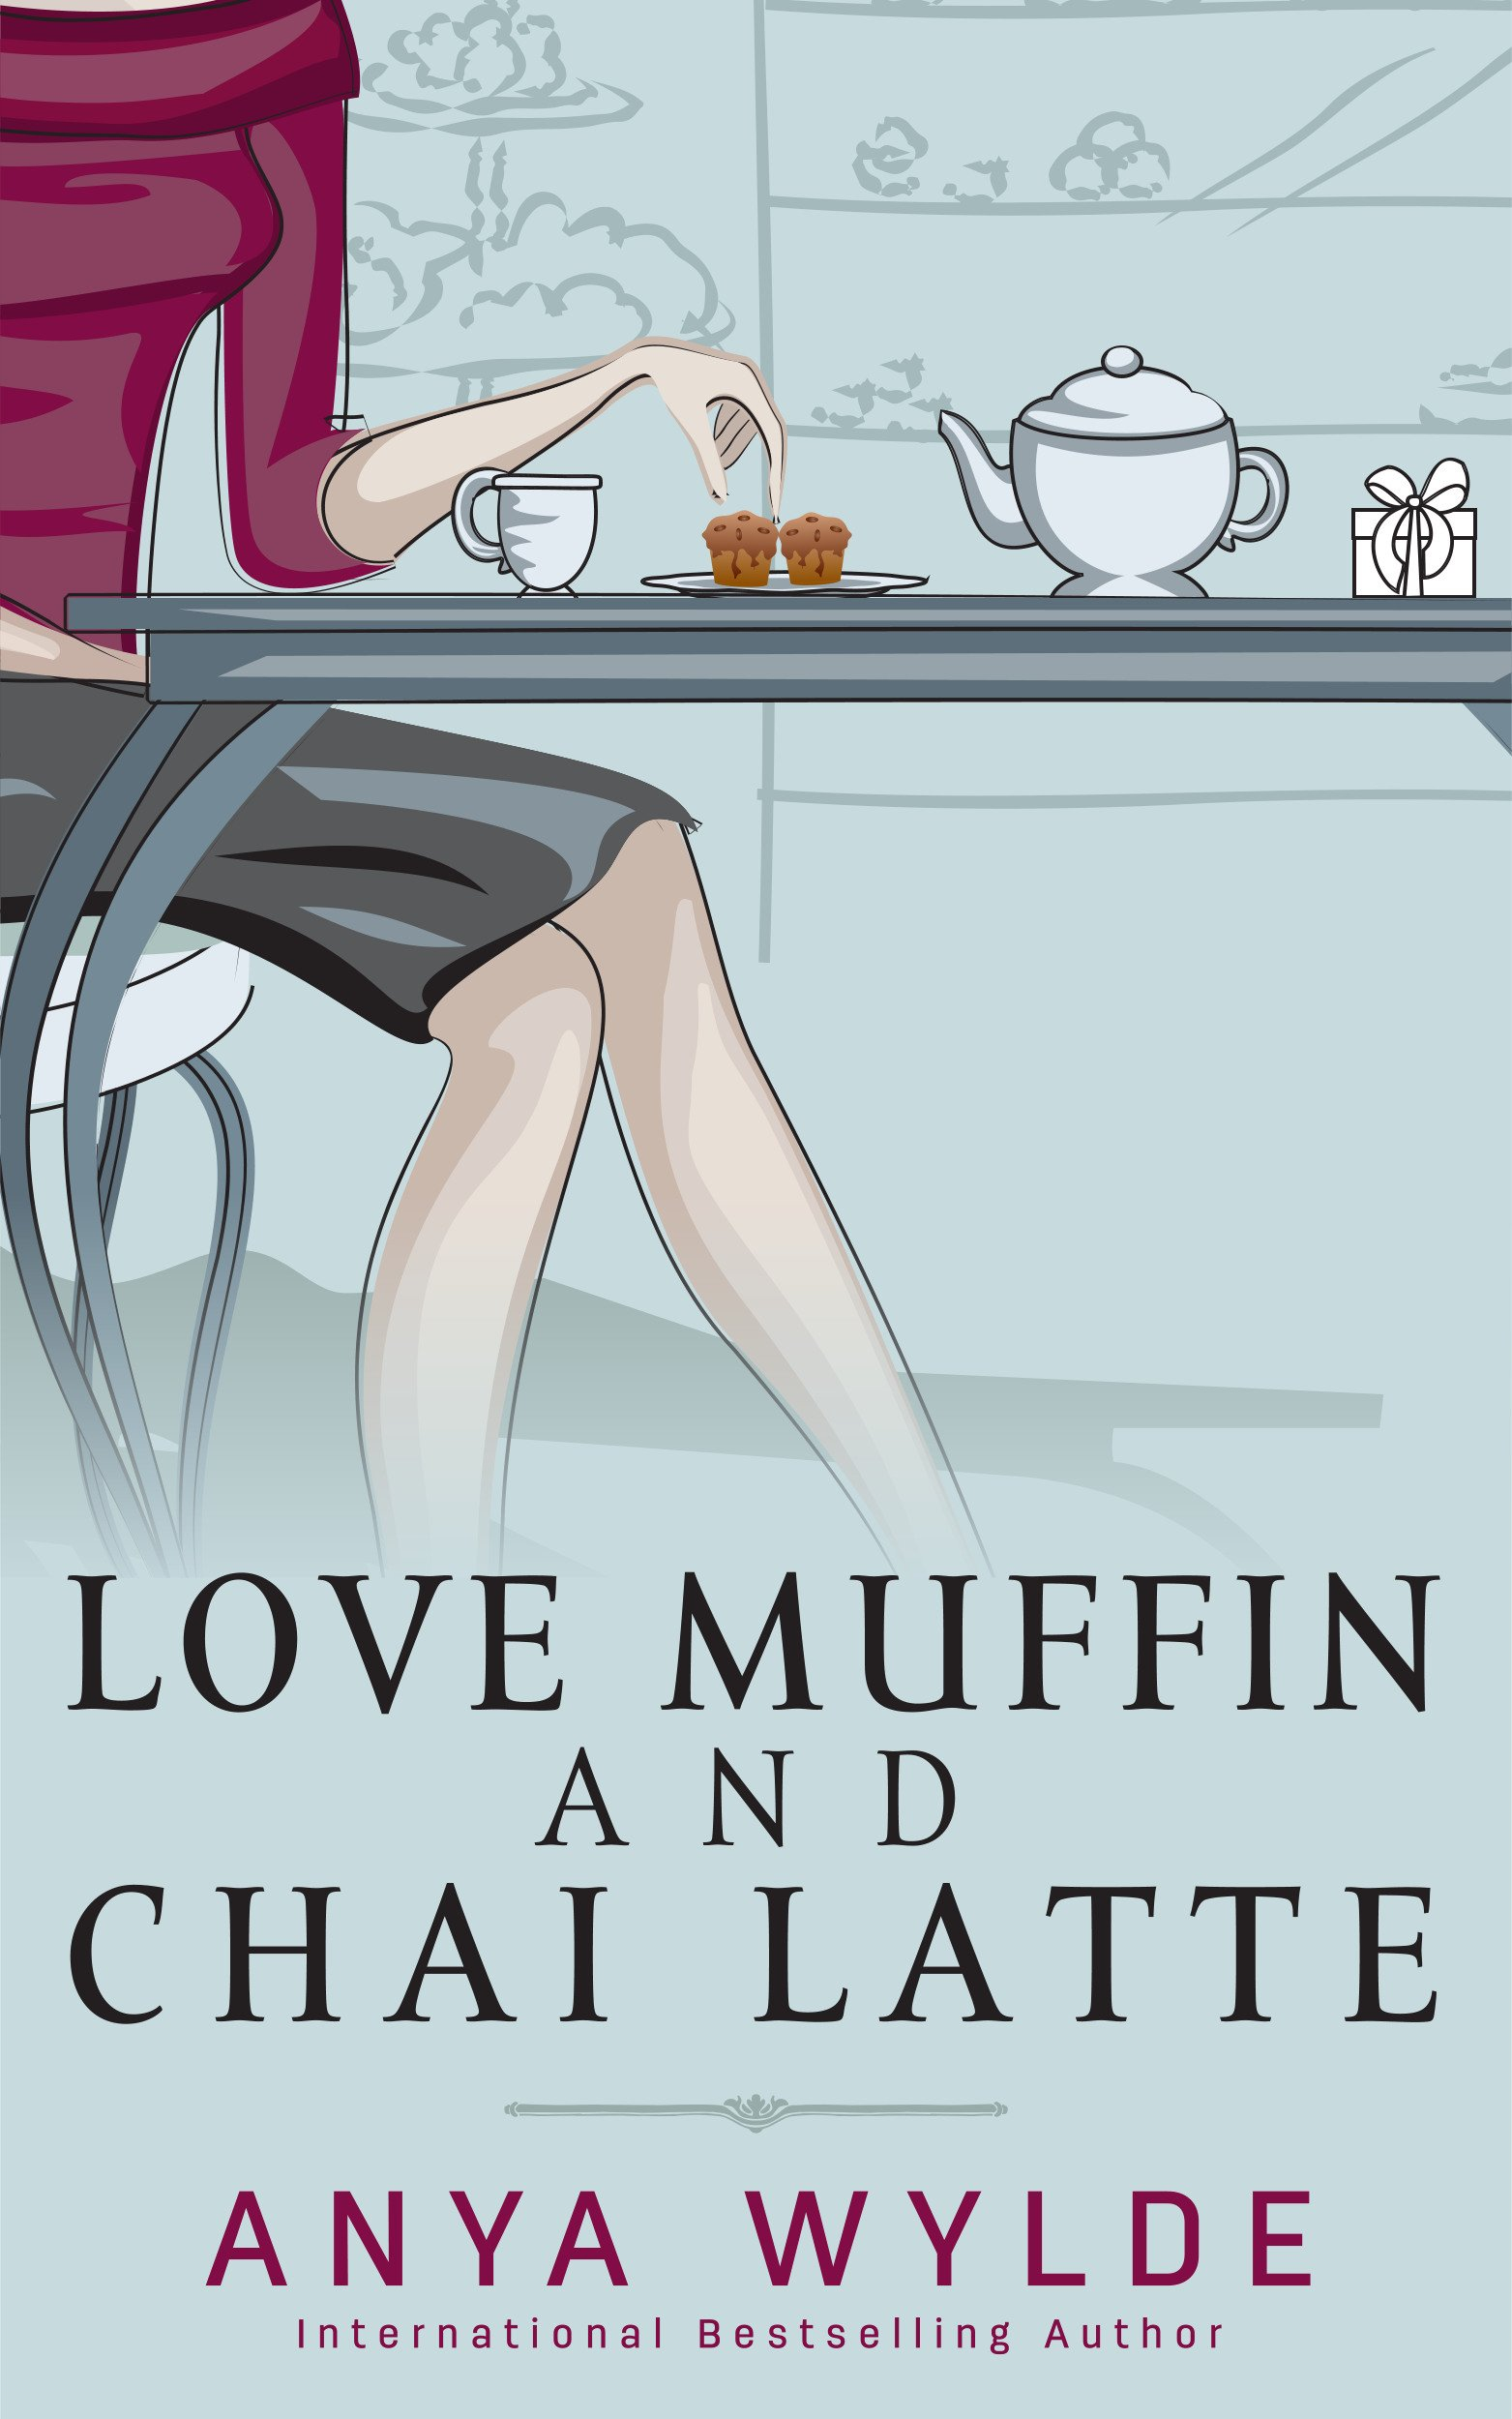 $1 Clean Romance Deal for Kindle